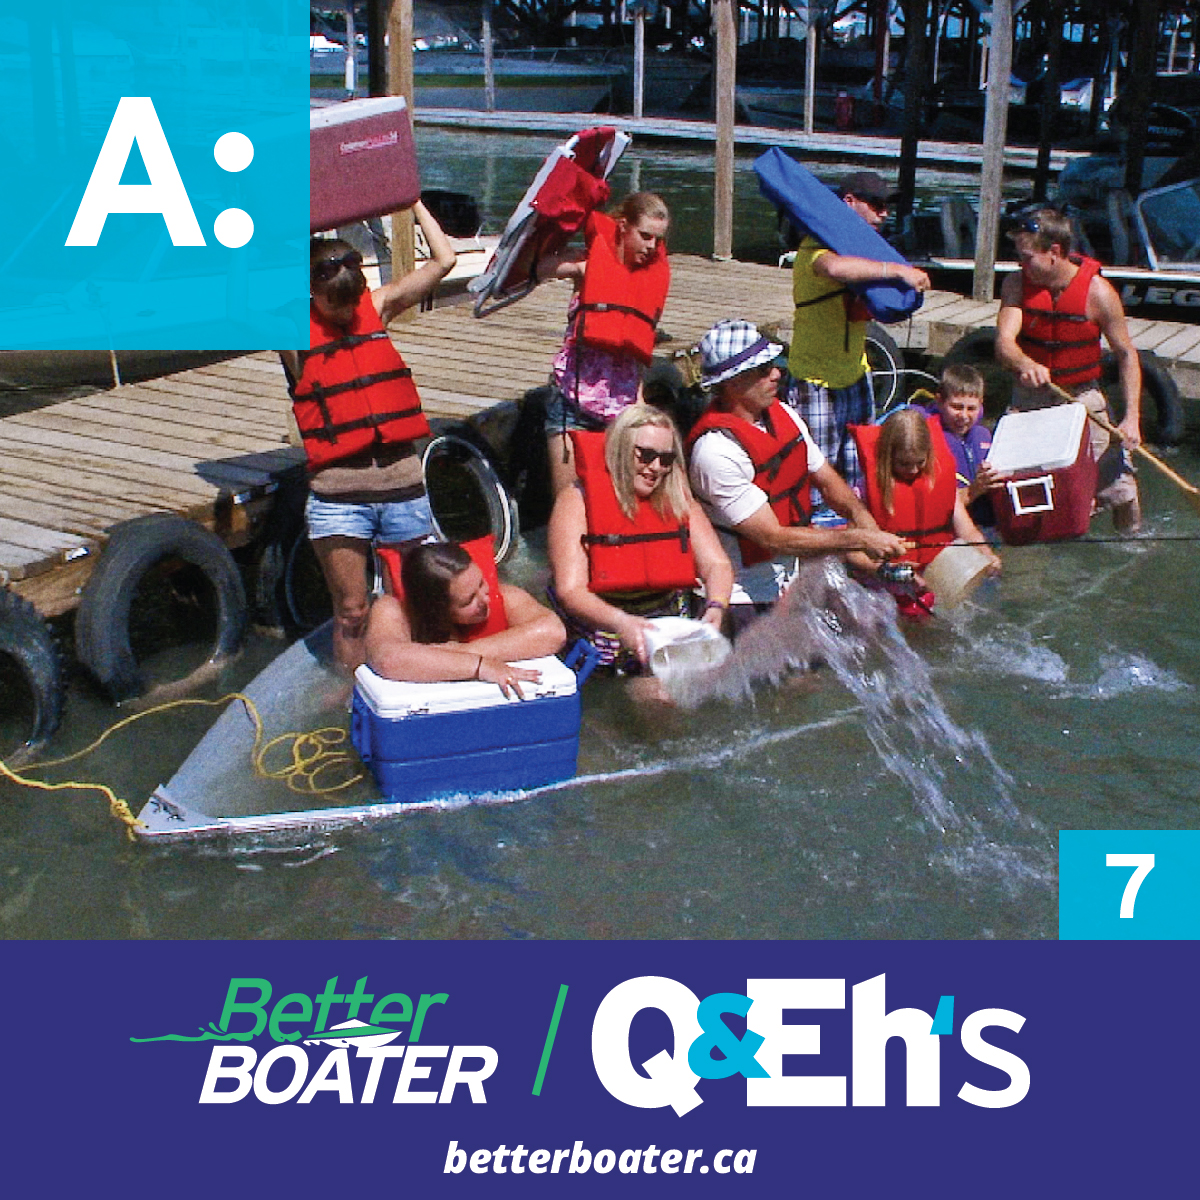 https://betterboater.ca/Q&Eh:%20Loading%20Boat